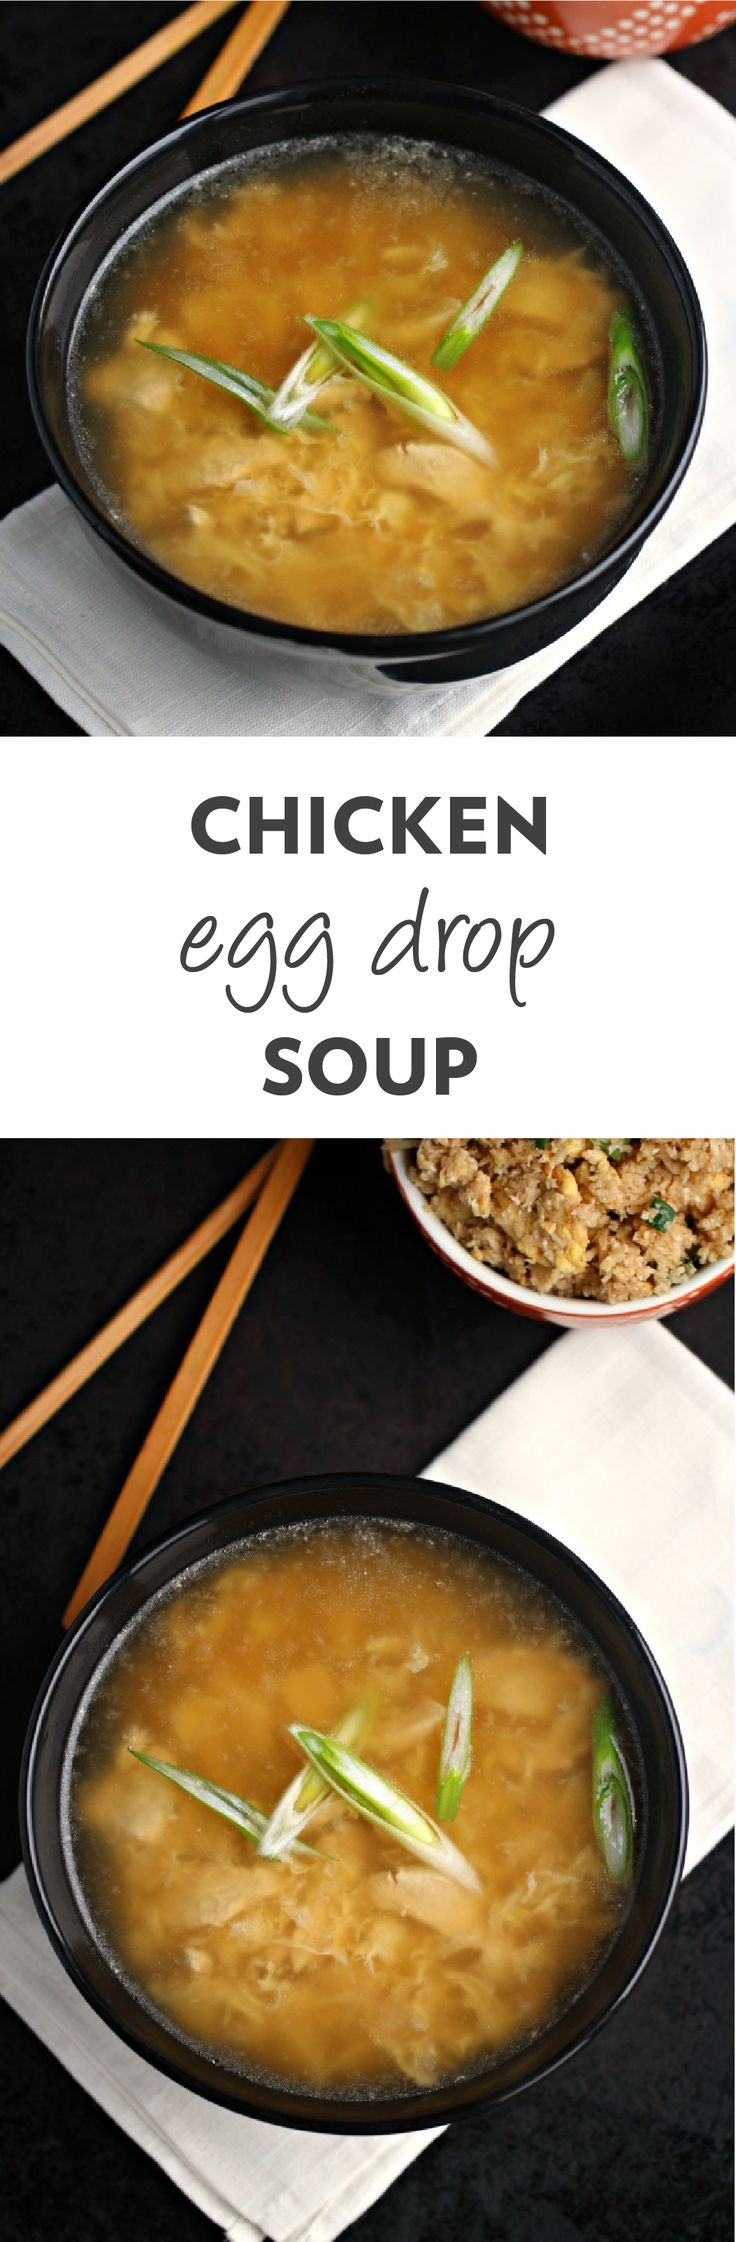 This easy Chicken & Egg Drop Soup recipe tastes just like your favorite Chinese take-out—only better! Soothing and comforting thanks to silky egg ribbons, savory broth, and mouthwatering chicken pieces, your taste buds—and your family—will thank you when you serve up this warm dish on the dinner table.